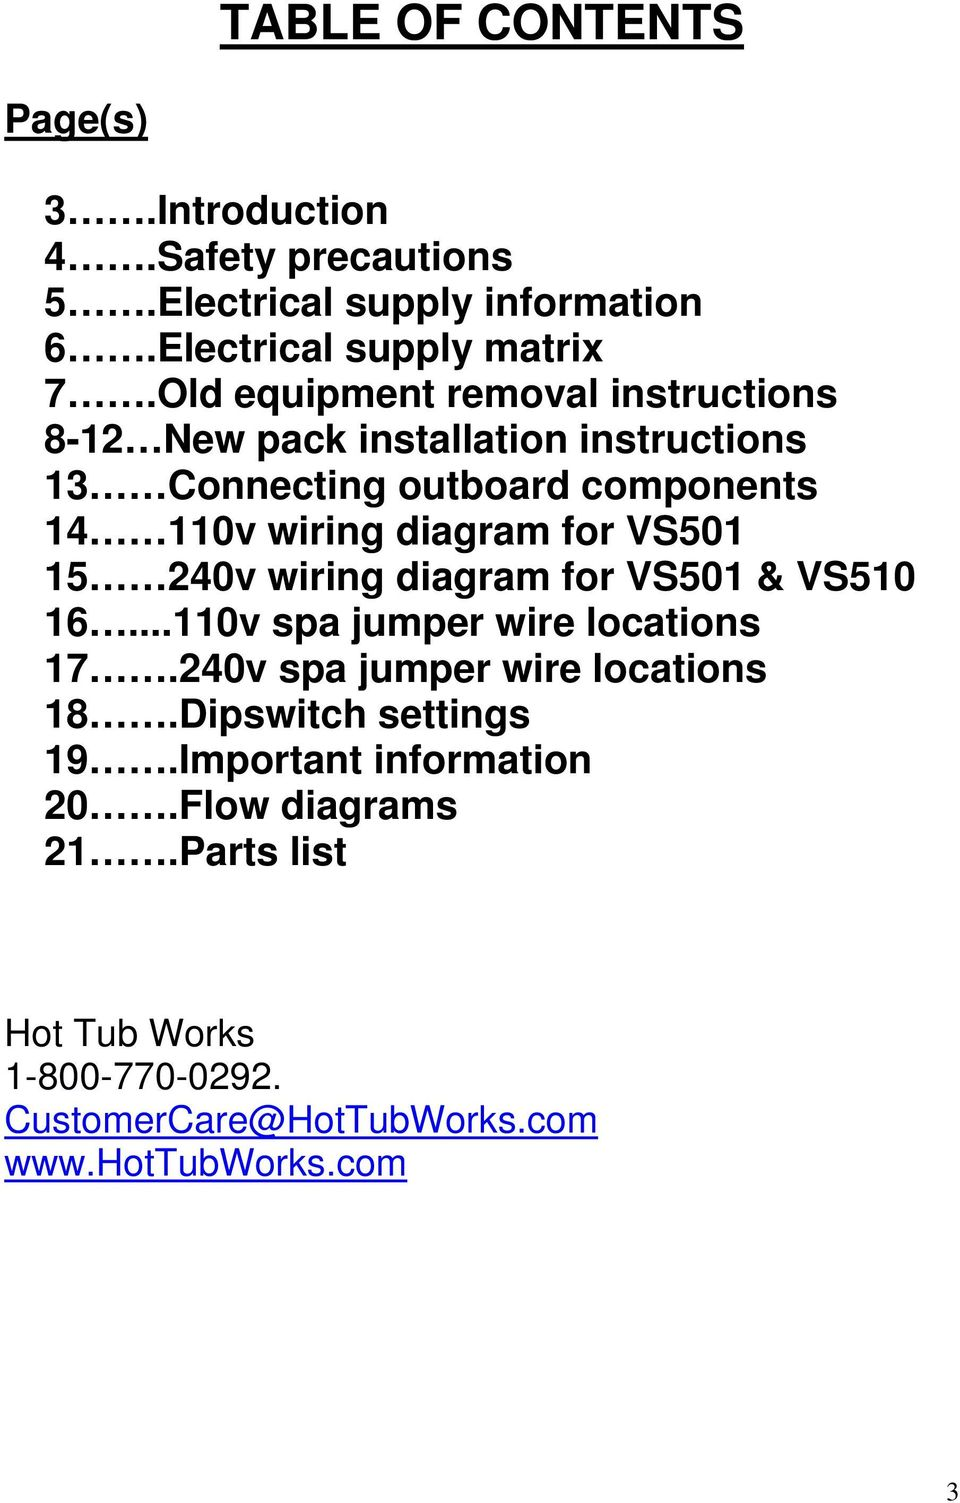 Vs Control Pack Installation Instructions Pdf 4 Wire 240v Wiring Diagram For Vs501 15 Vs510 16110v Spa